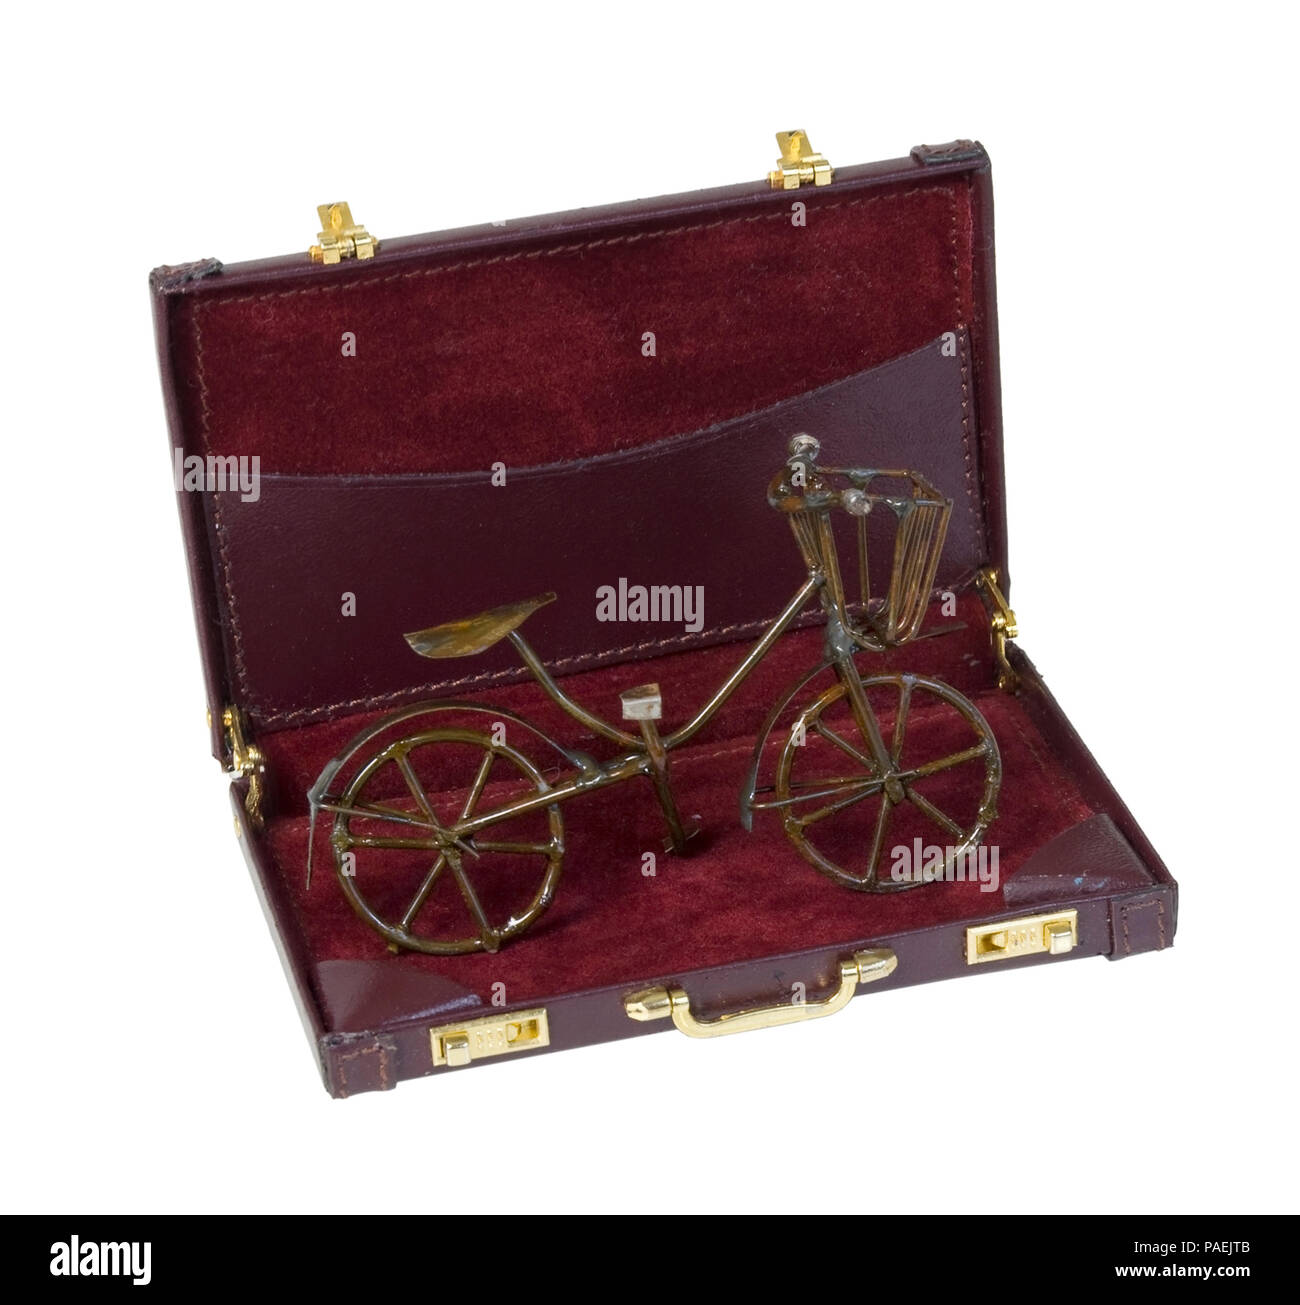 Vintage Bike used for transportation in a briefcase - path included - Stock Image